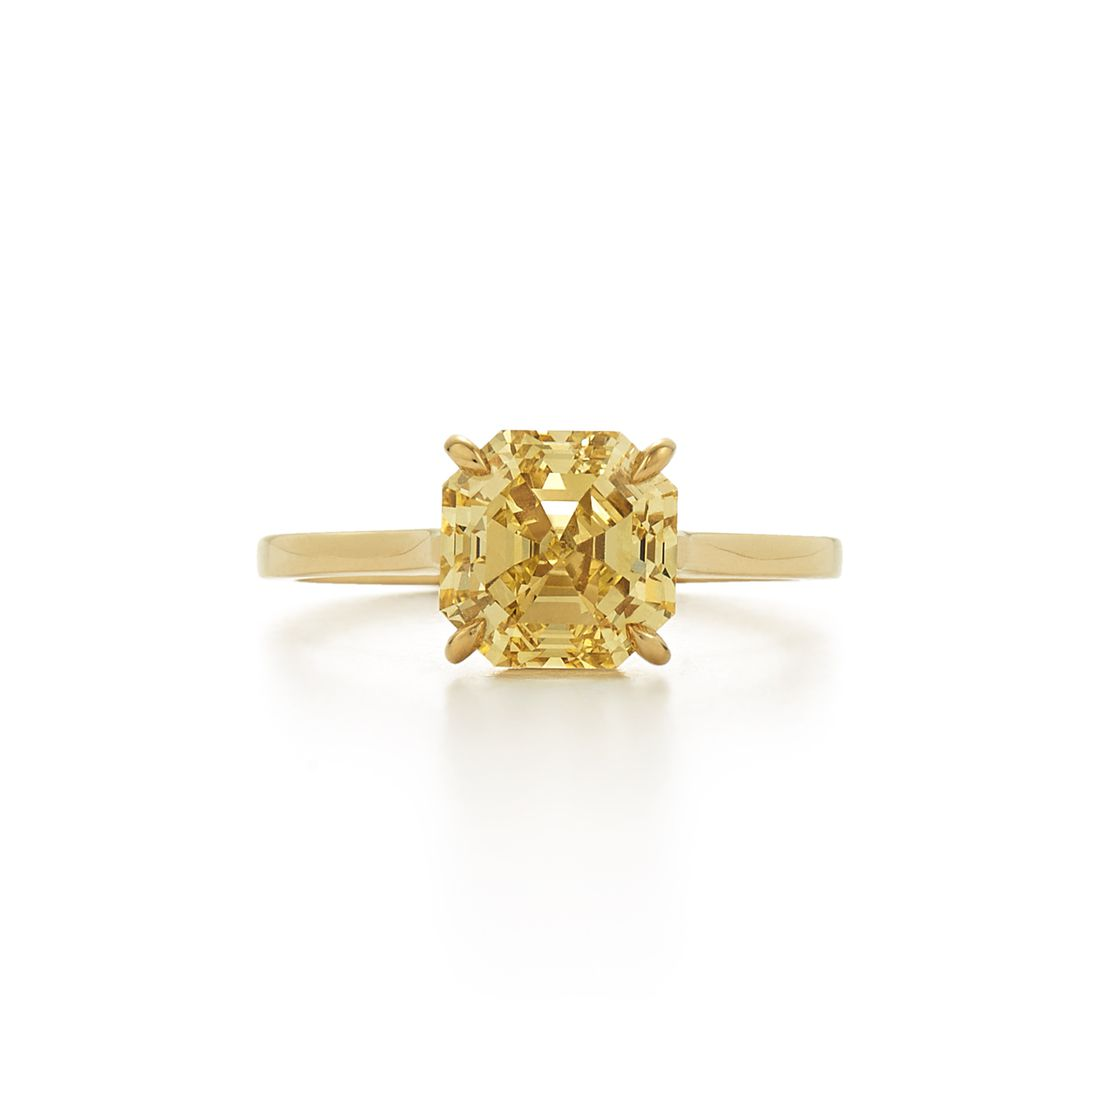 Yellow diamond engagement ring with yellow gold band on a white background